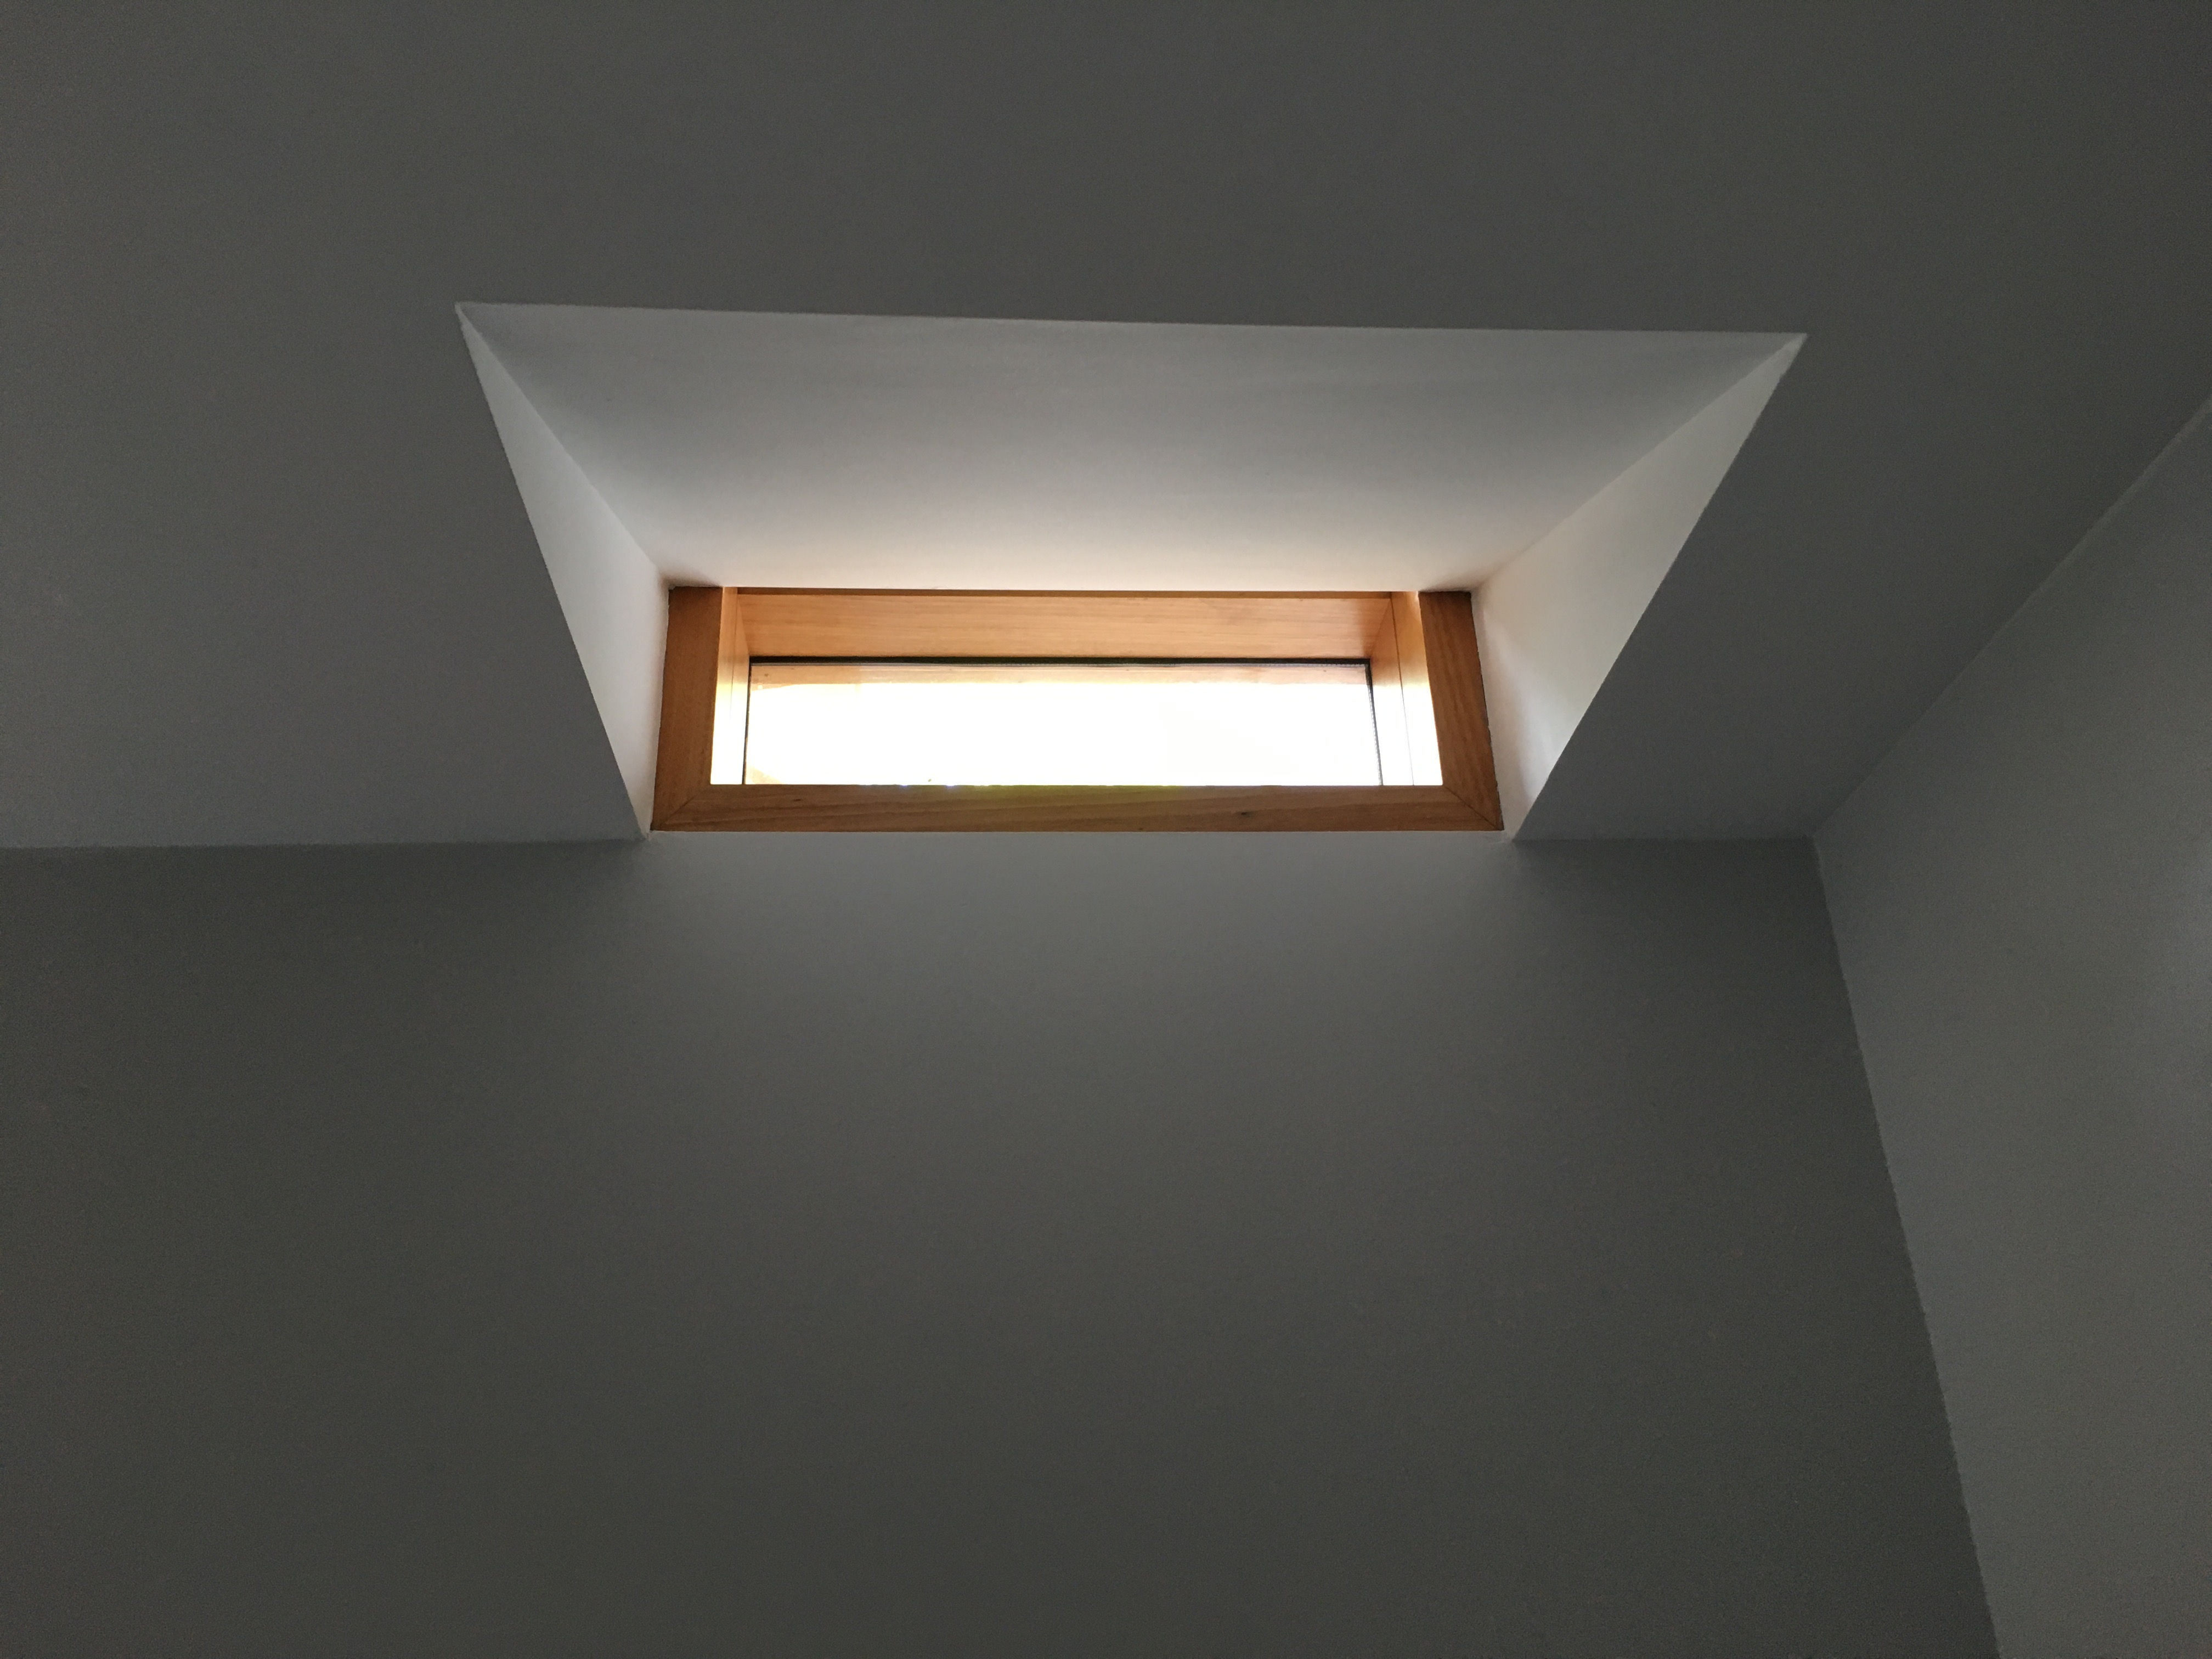 Downstair skylight in the ceiling